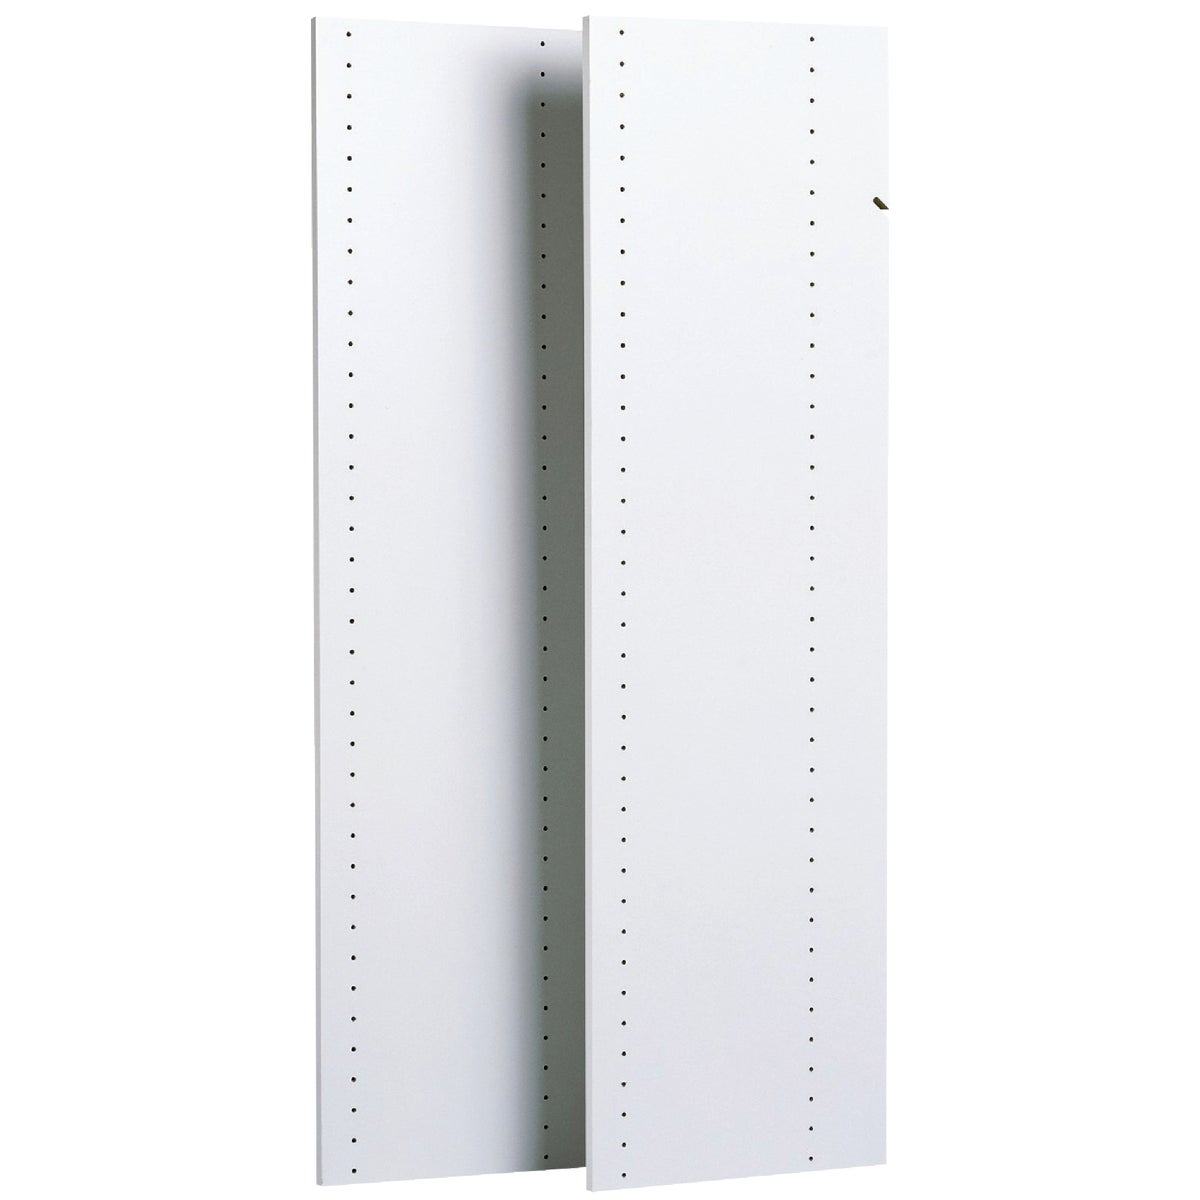 "48"" 2PK HANGING PANELS - RV1447 by The Stow Company"